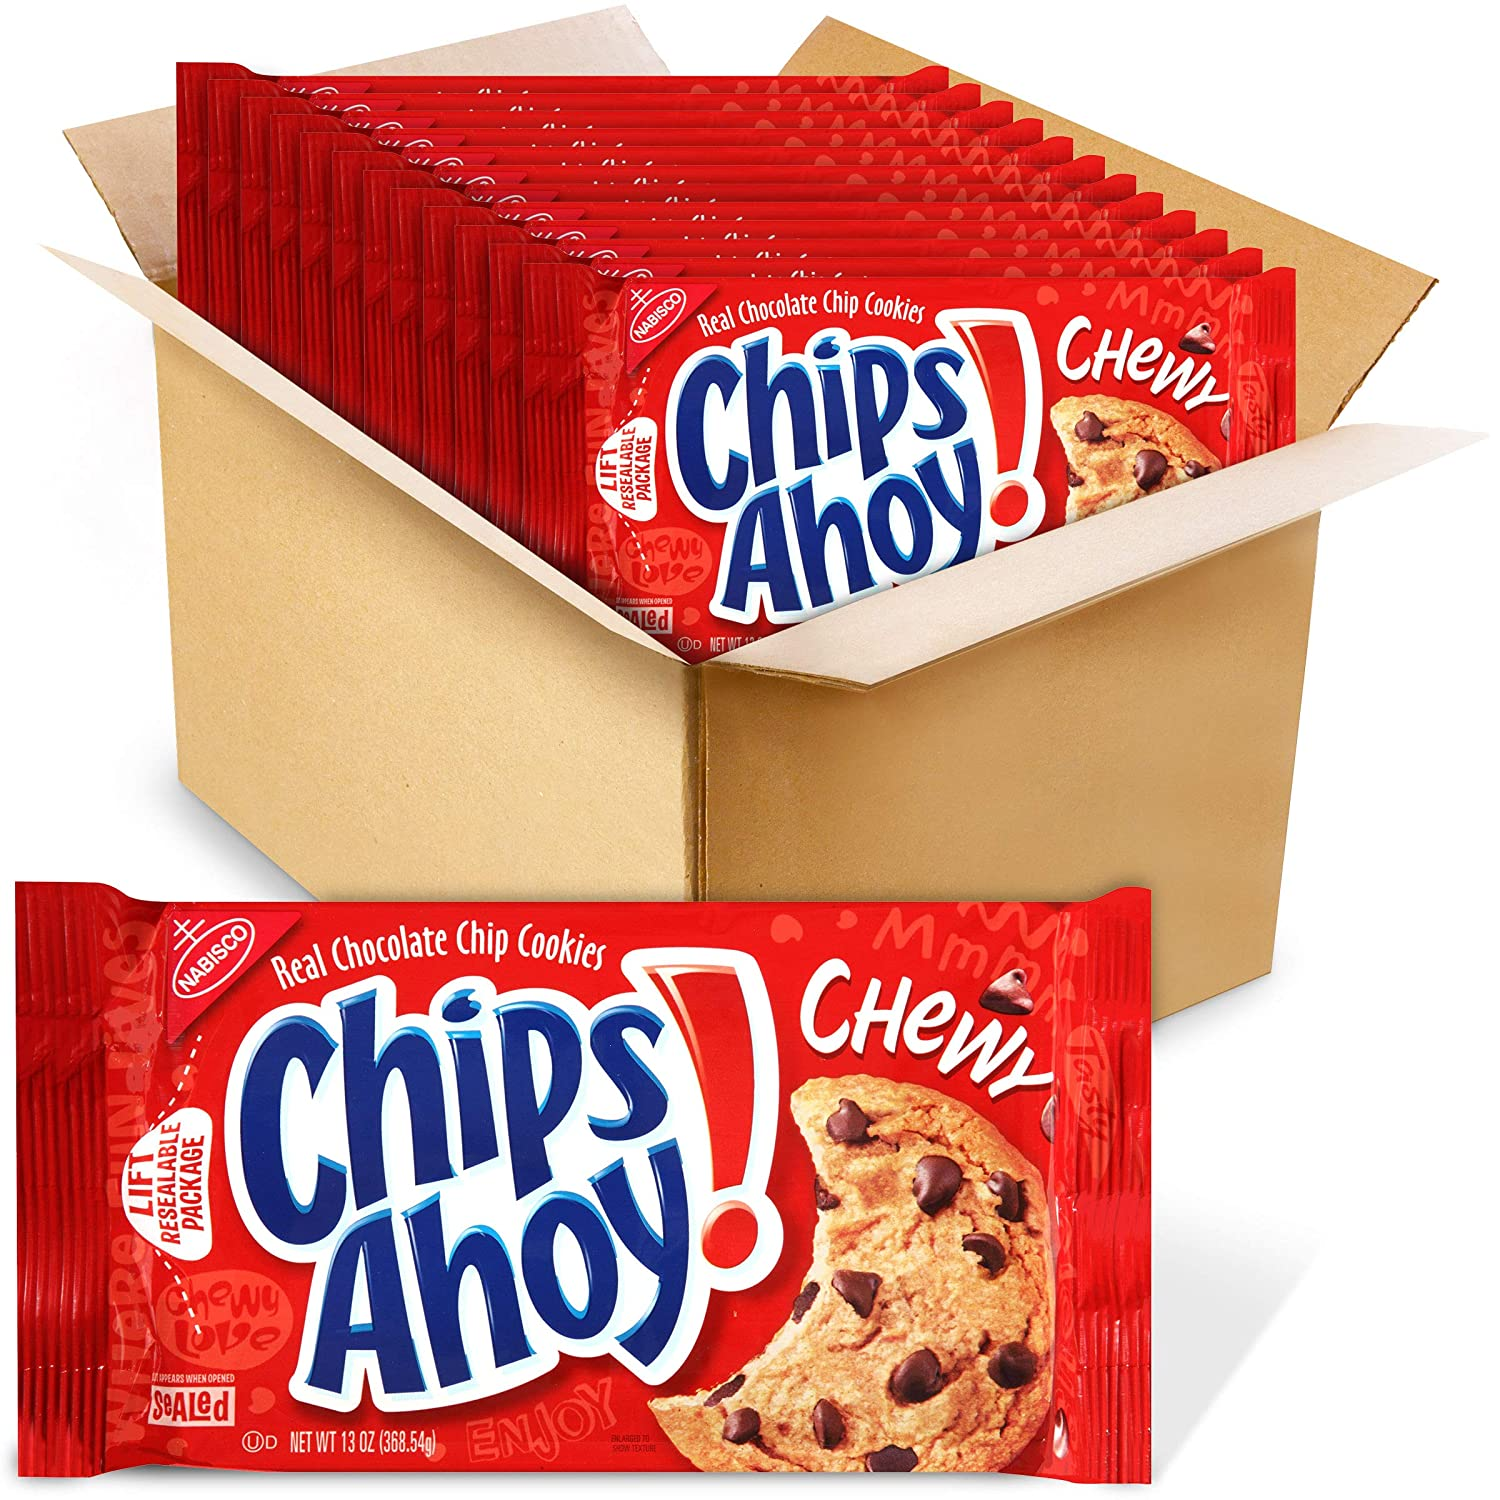 CHIPS AHOY! Chewy Chocolate Chip Cookies, 12 - 13 oz Packs